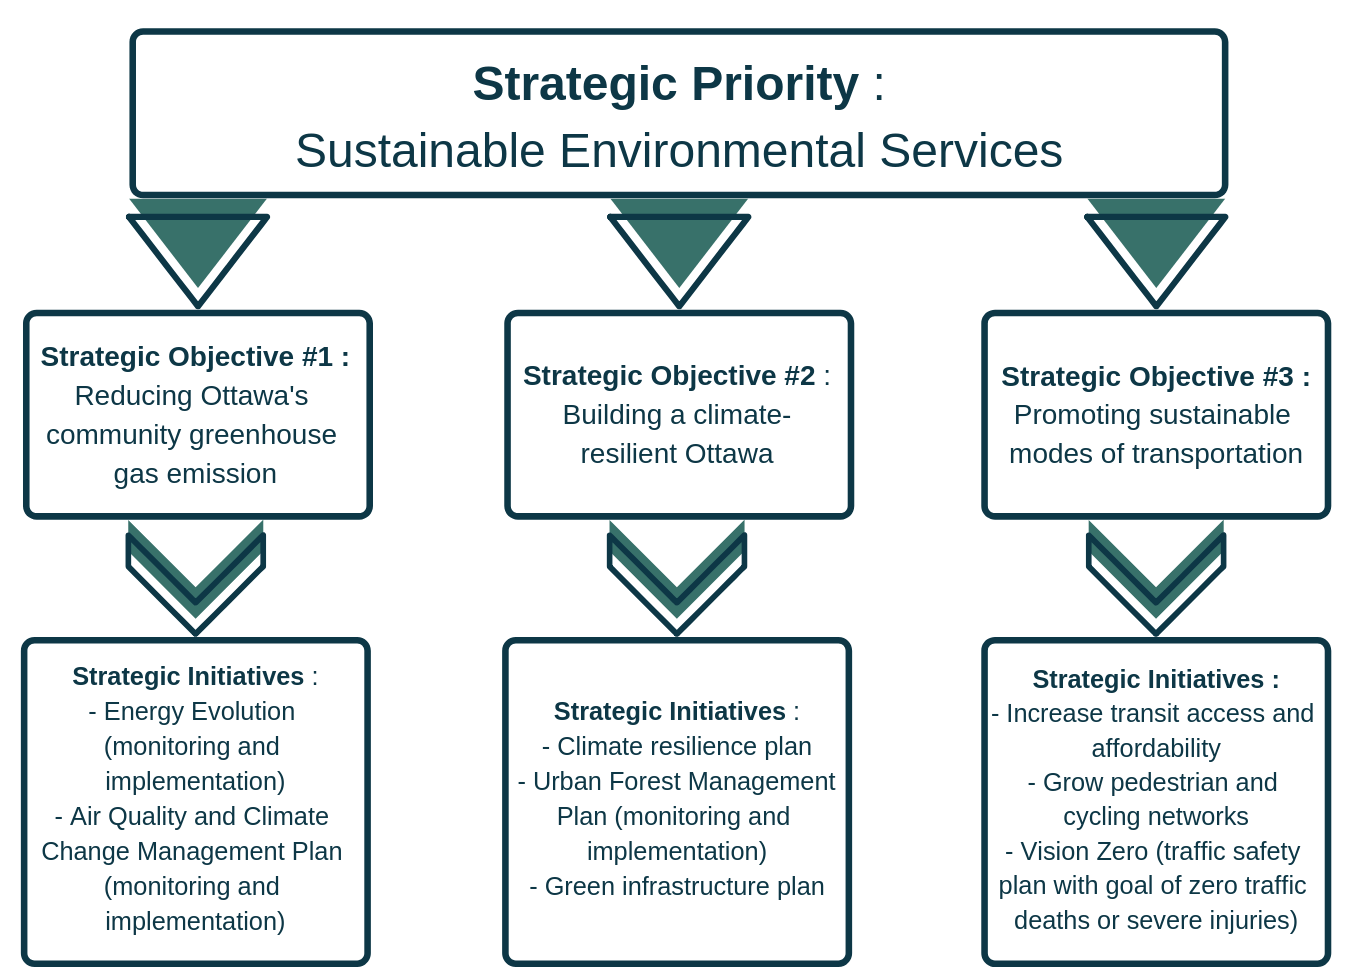 strategic-priority-_-sustainable-environmental-services-e1547671337262.png